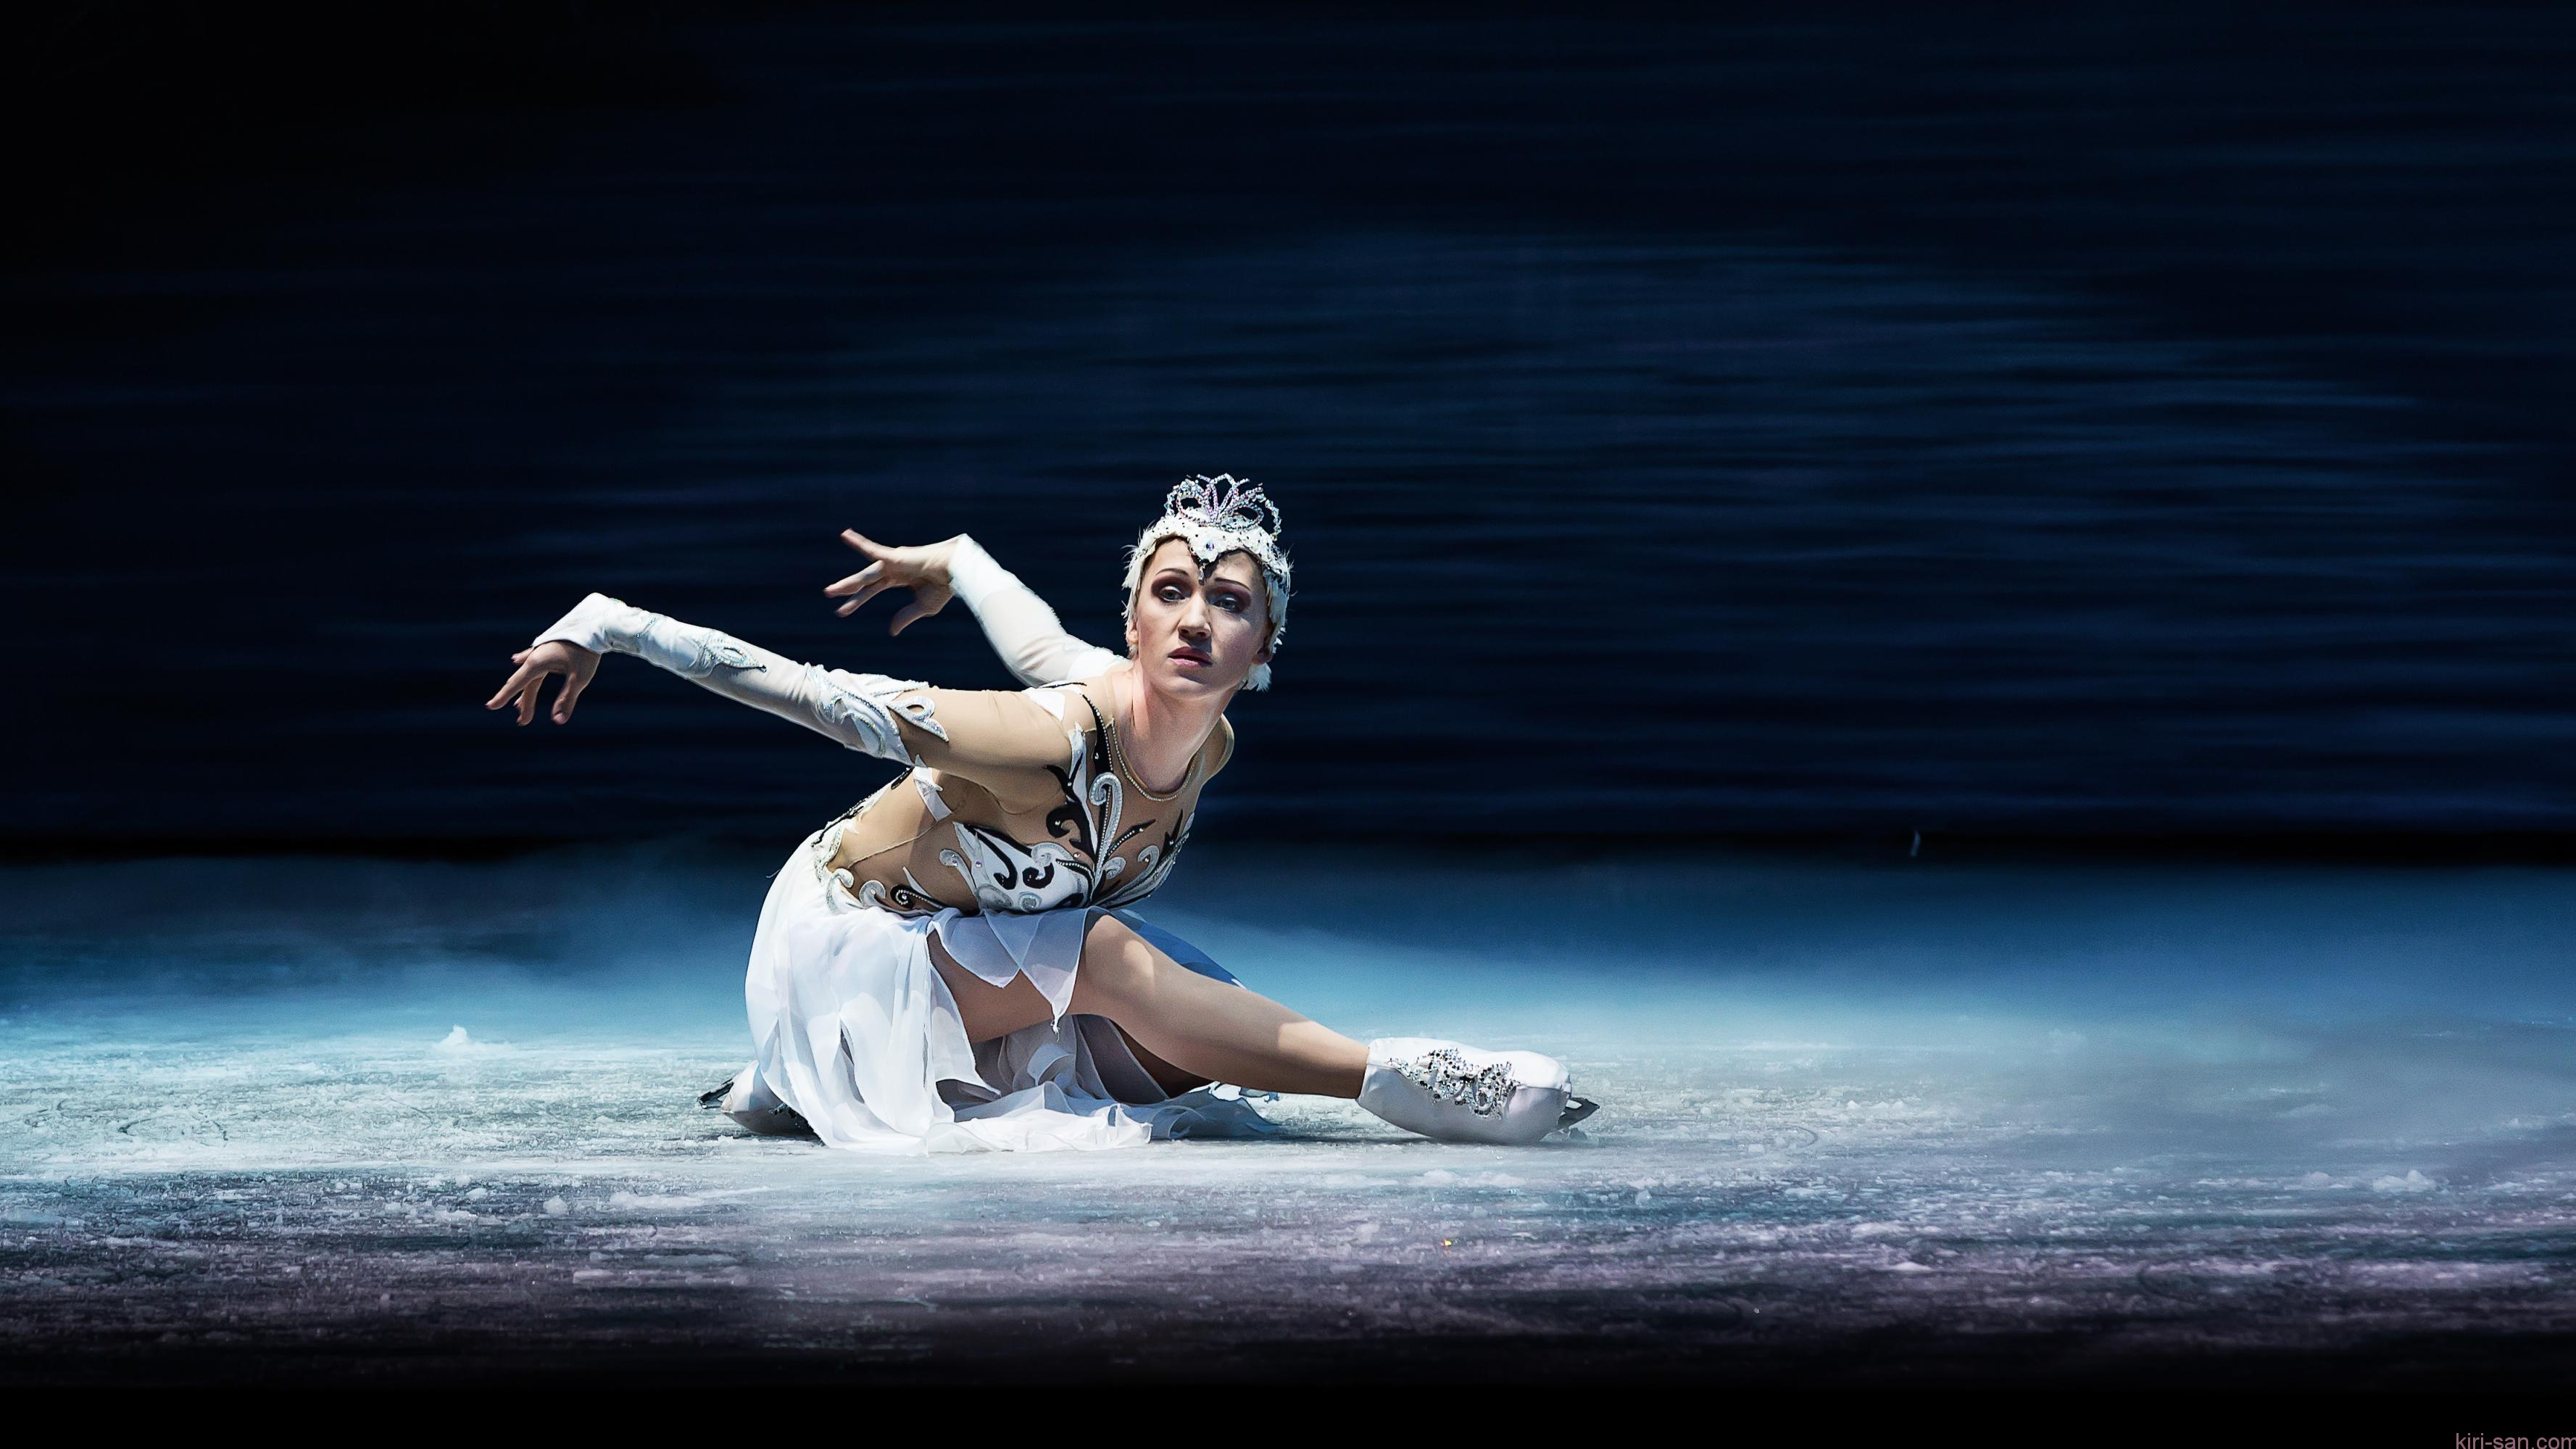 SWAN LAKE ON ICE_Olga Sharutenko as Odette